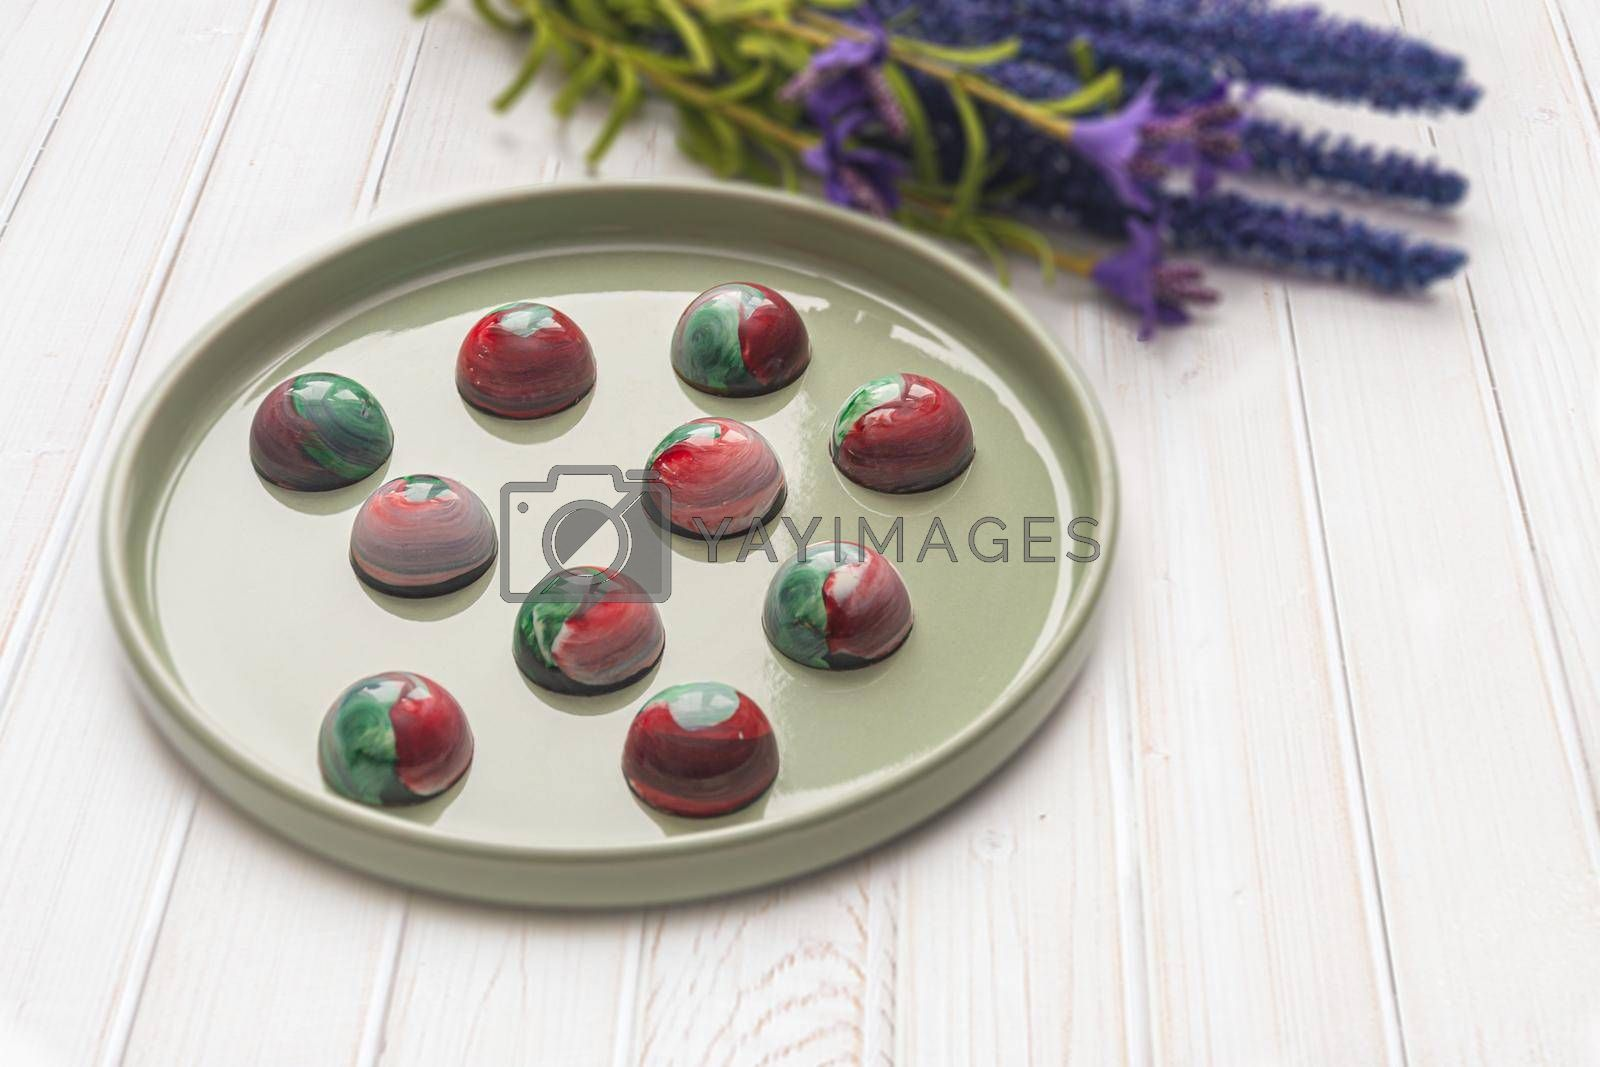 Collectible handmade tempered chocolate candies with a glossy painted body on a round plate with a blurred background and bokeh elements. Stock photography.